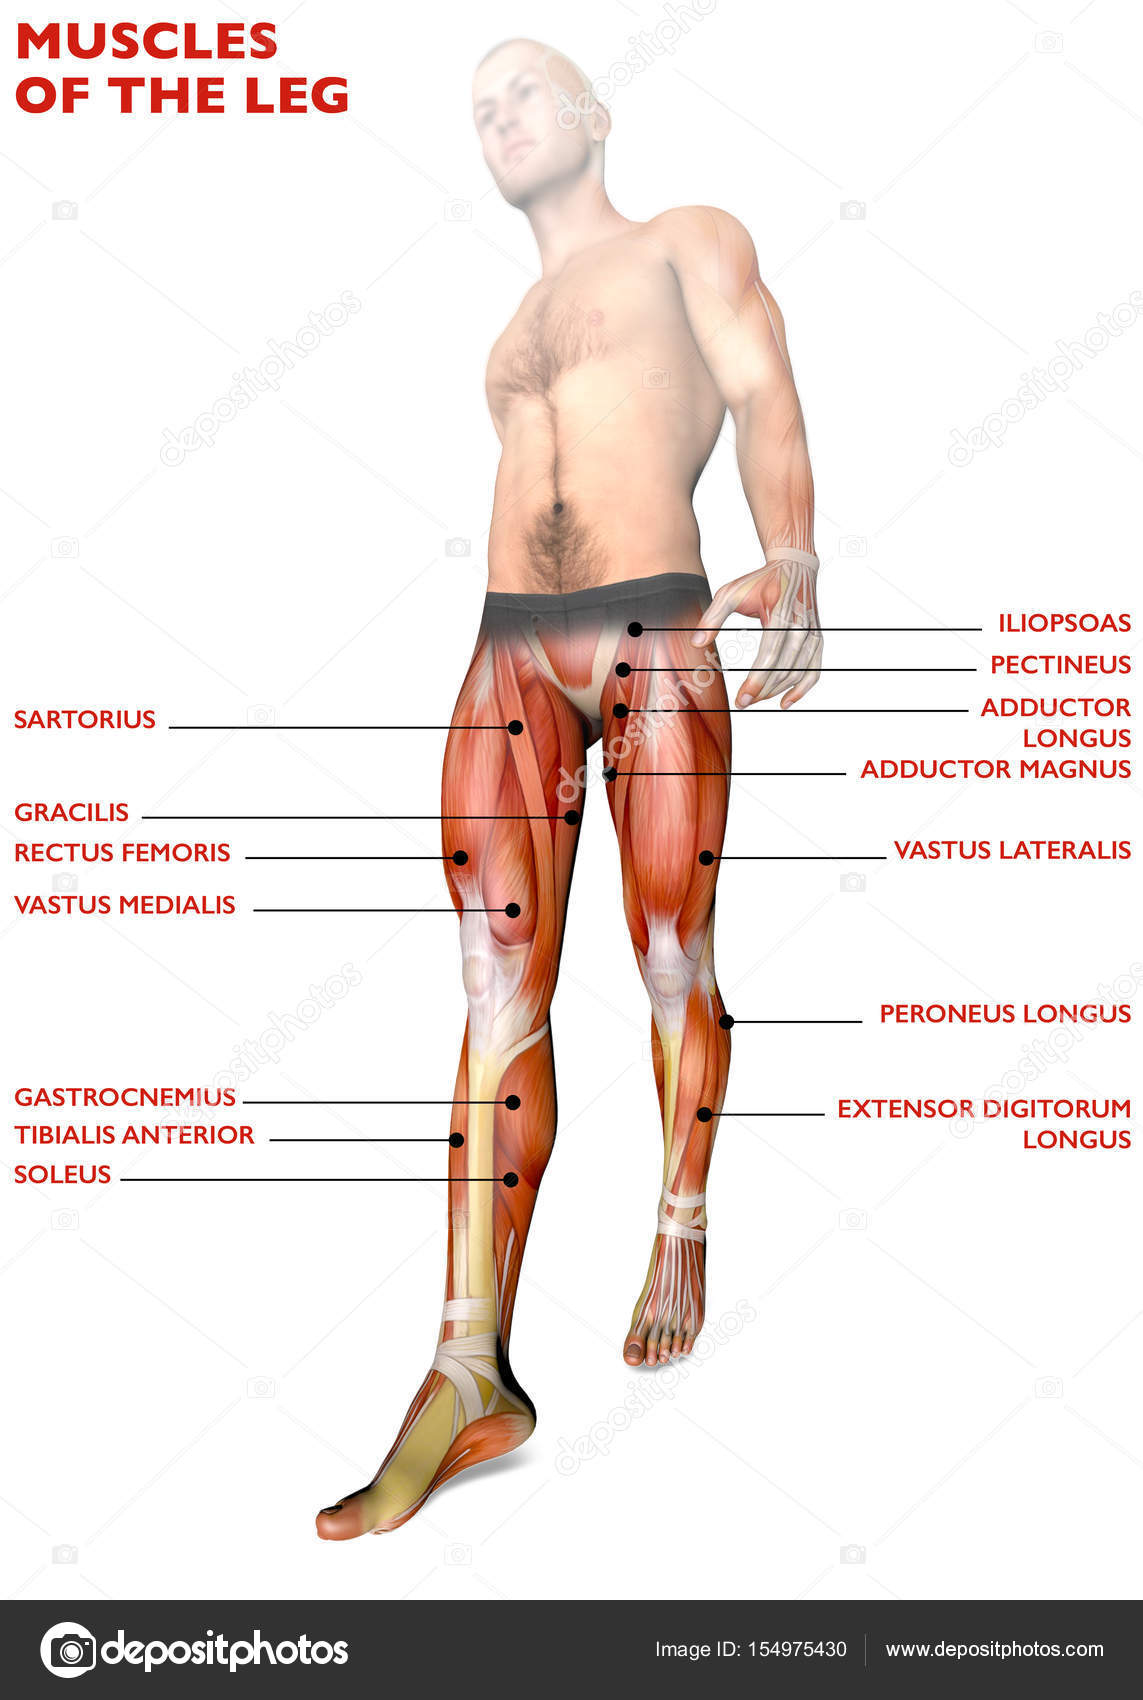 Leg Muscles Human Body Anatomy Muscular System Person Diagram 3d Rendering Photo By Vampy1